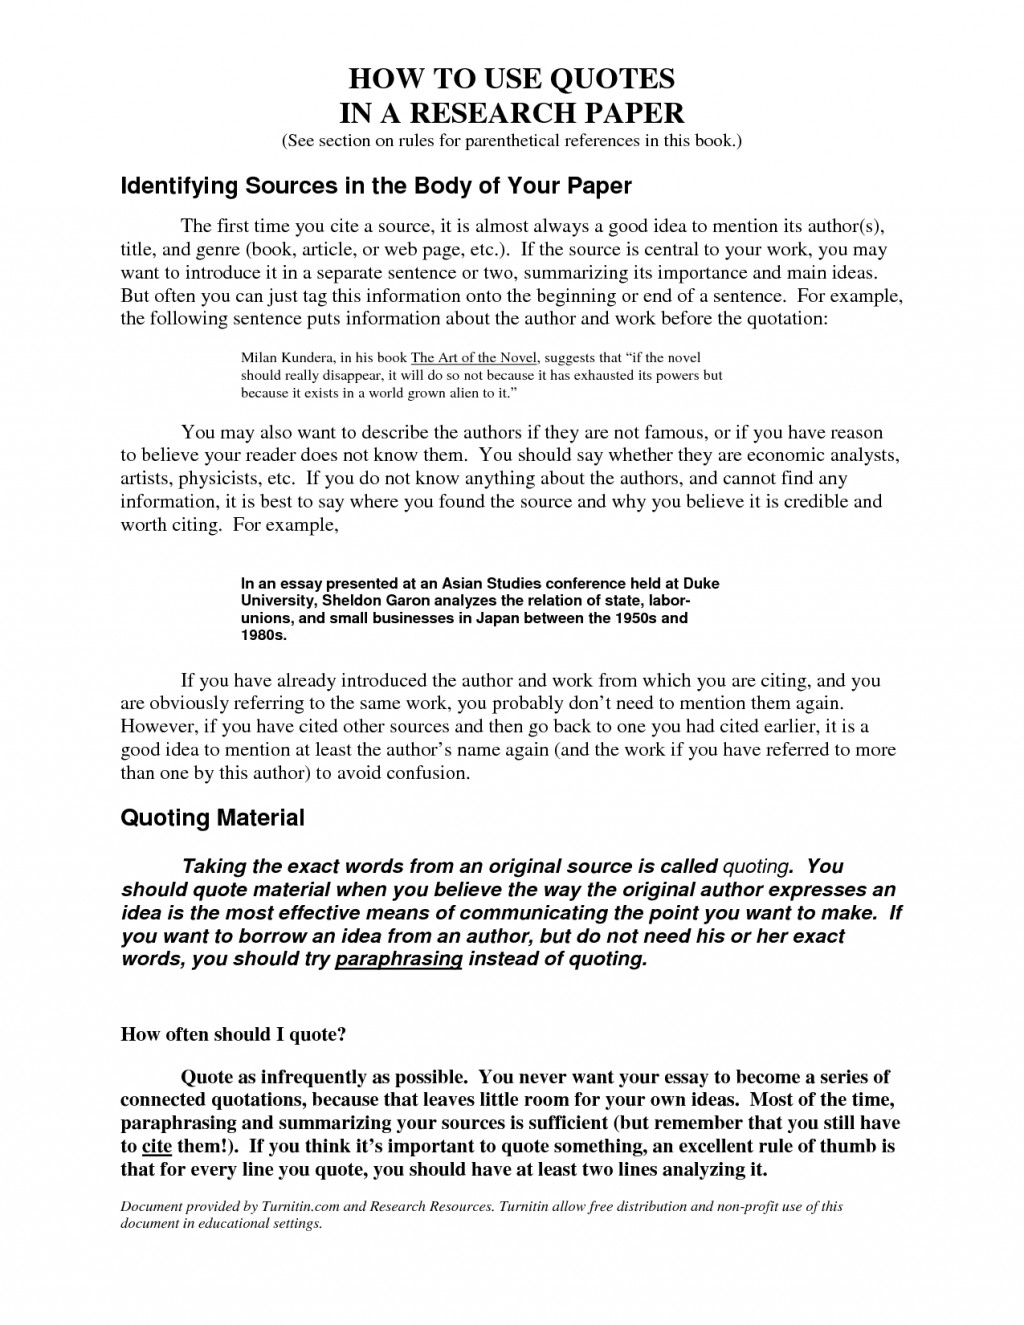 003 Essay Example Best Solutions Of Writing Quotes In Essays Marvelous Embedding On Quotestopics How To Put Remarkable An A Quote Apa Format Large